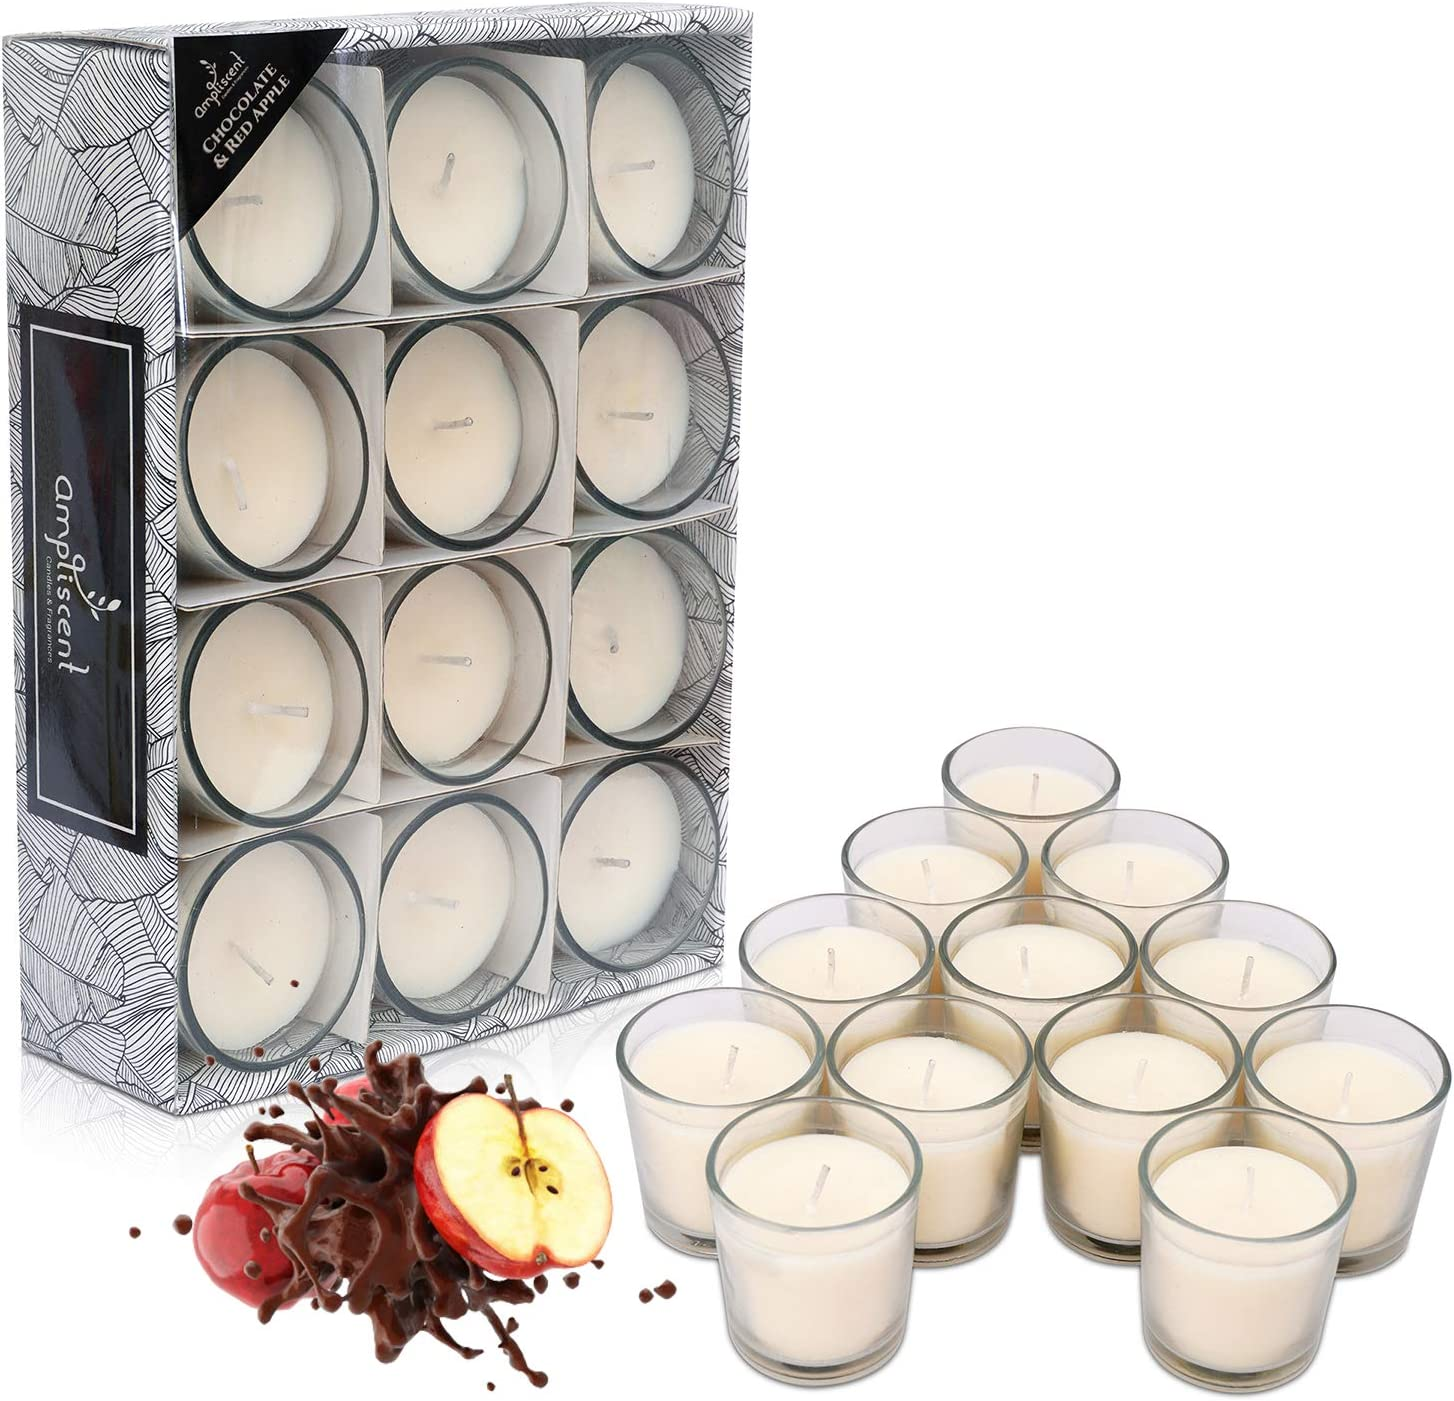 Ampliscent White Scented Glass Votive Candle - Set of 12 | Bulk Pack for Weddings, Bridal Showers or Home Parties and Centerpieces - Chocolate Red Apple